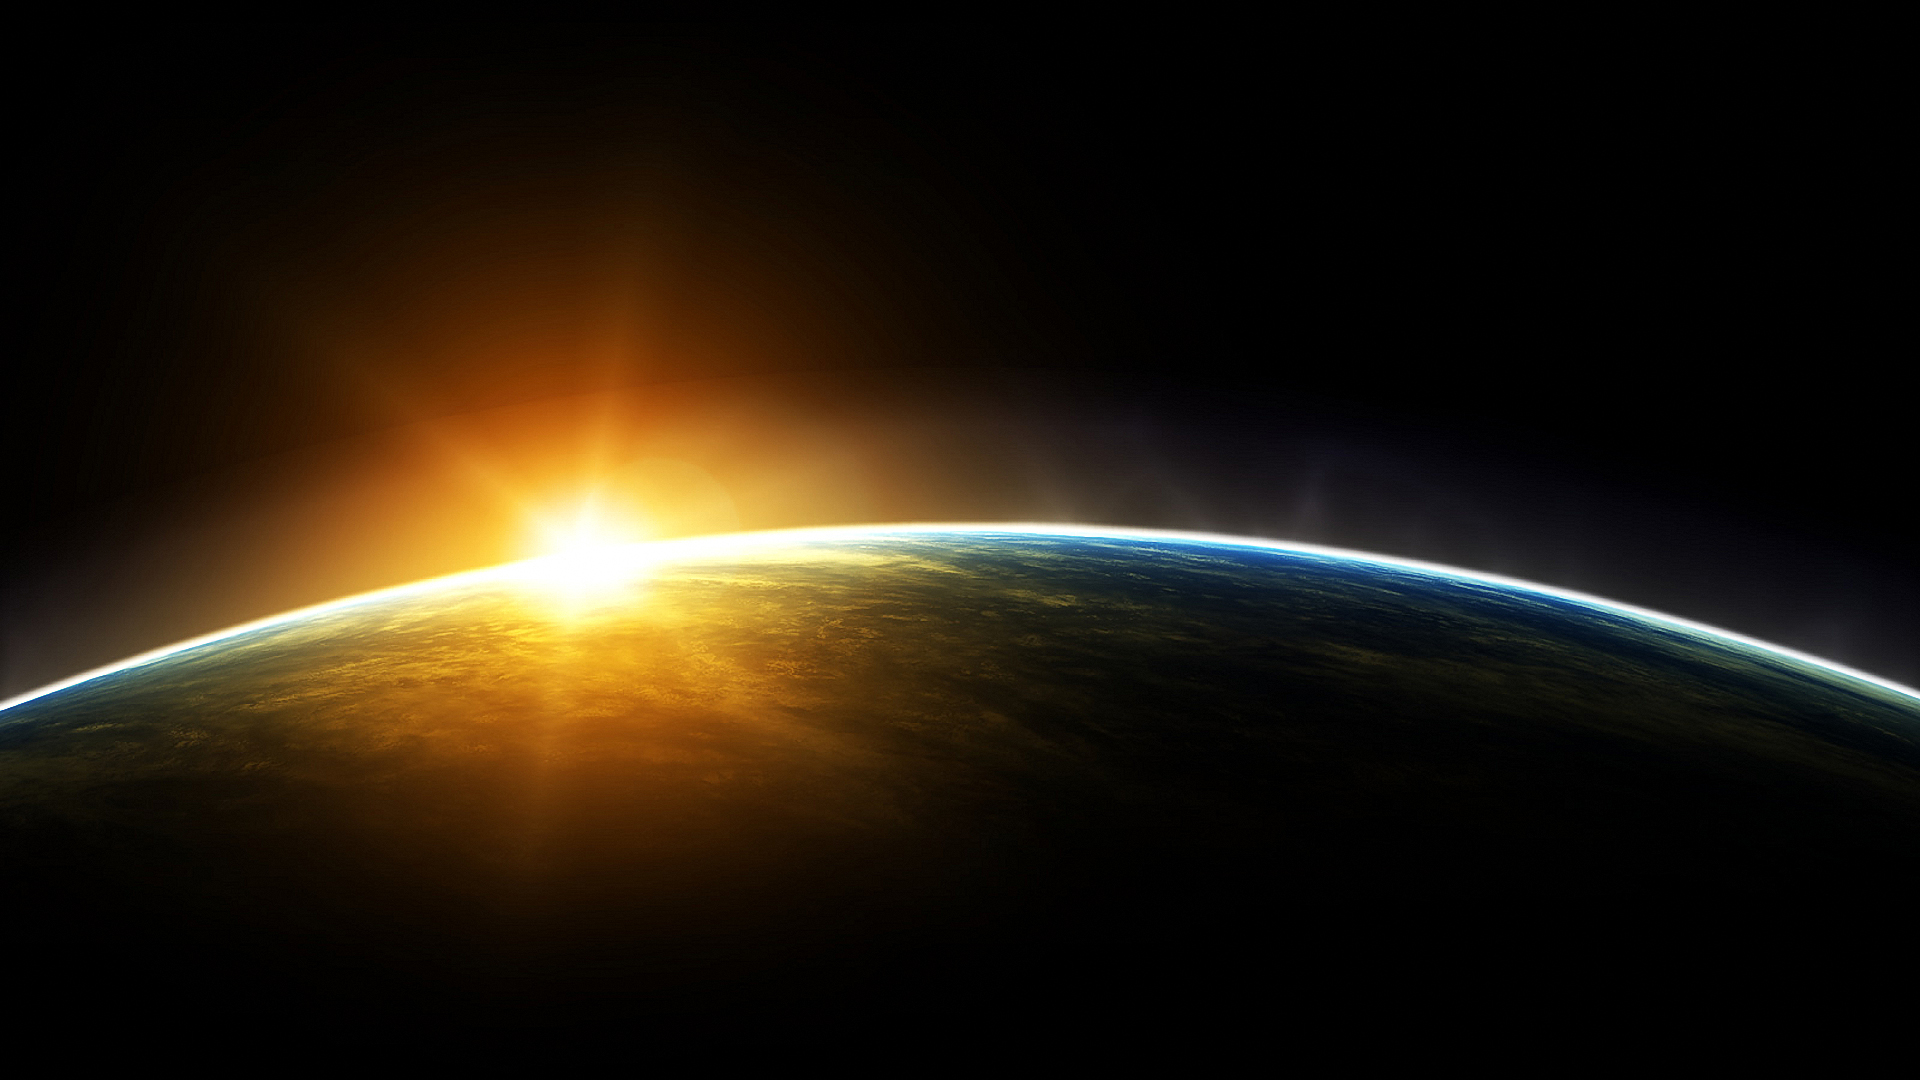 ... /1920×1080/lovely-earth-hd-from-space-p-anomaly-warzone-17909.html